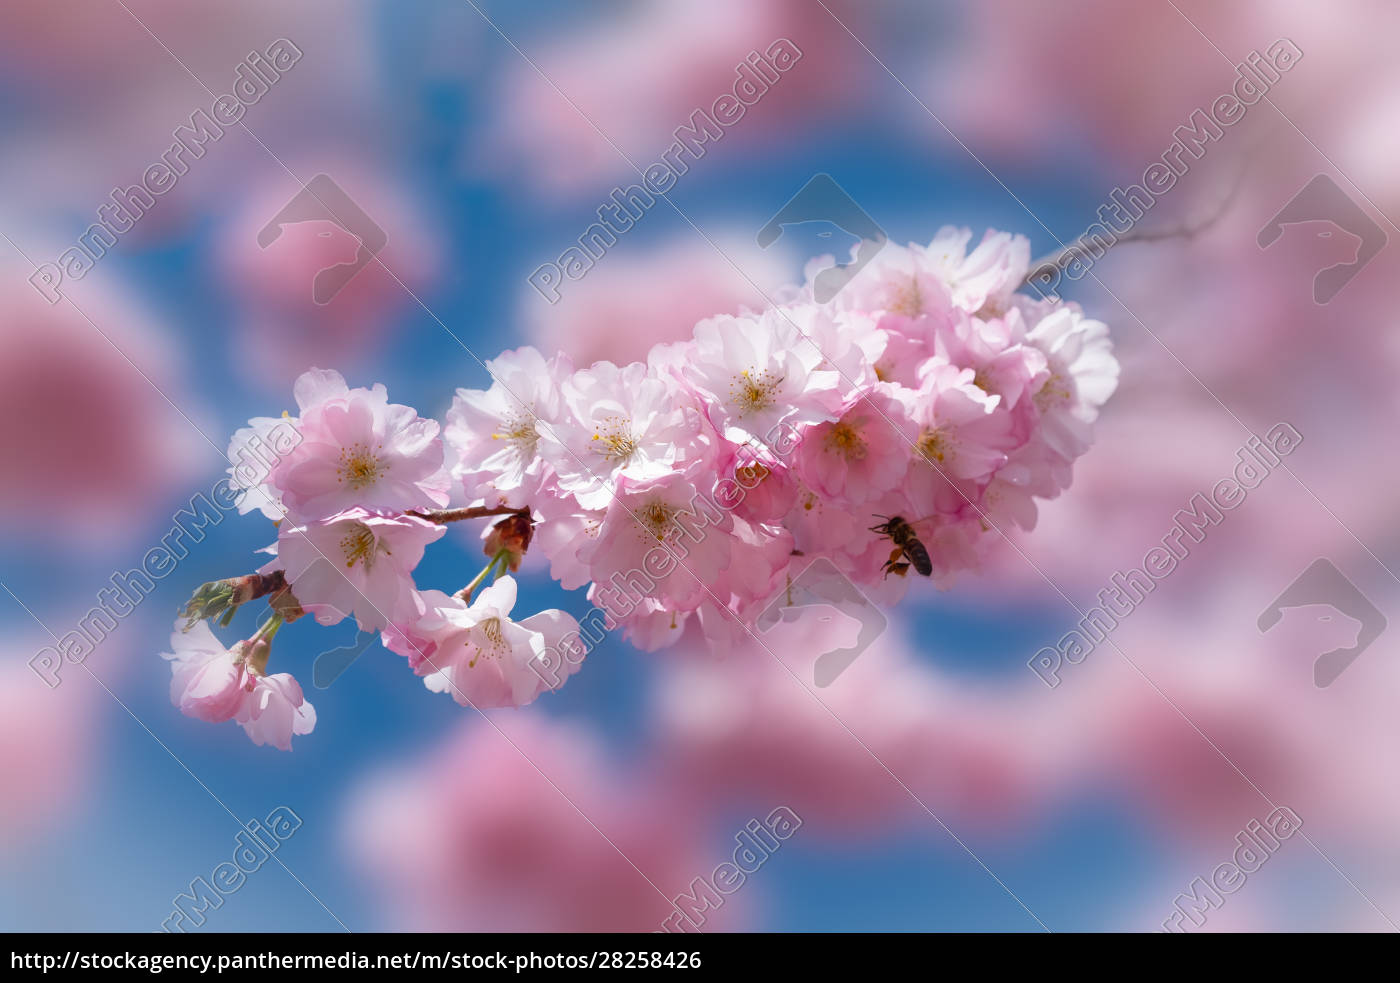 pink, cherry, blossom, with, honeybee, in - 28258426